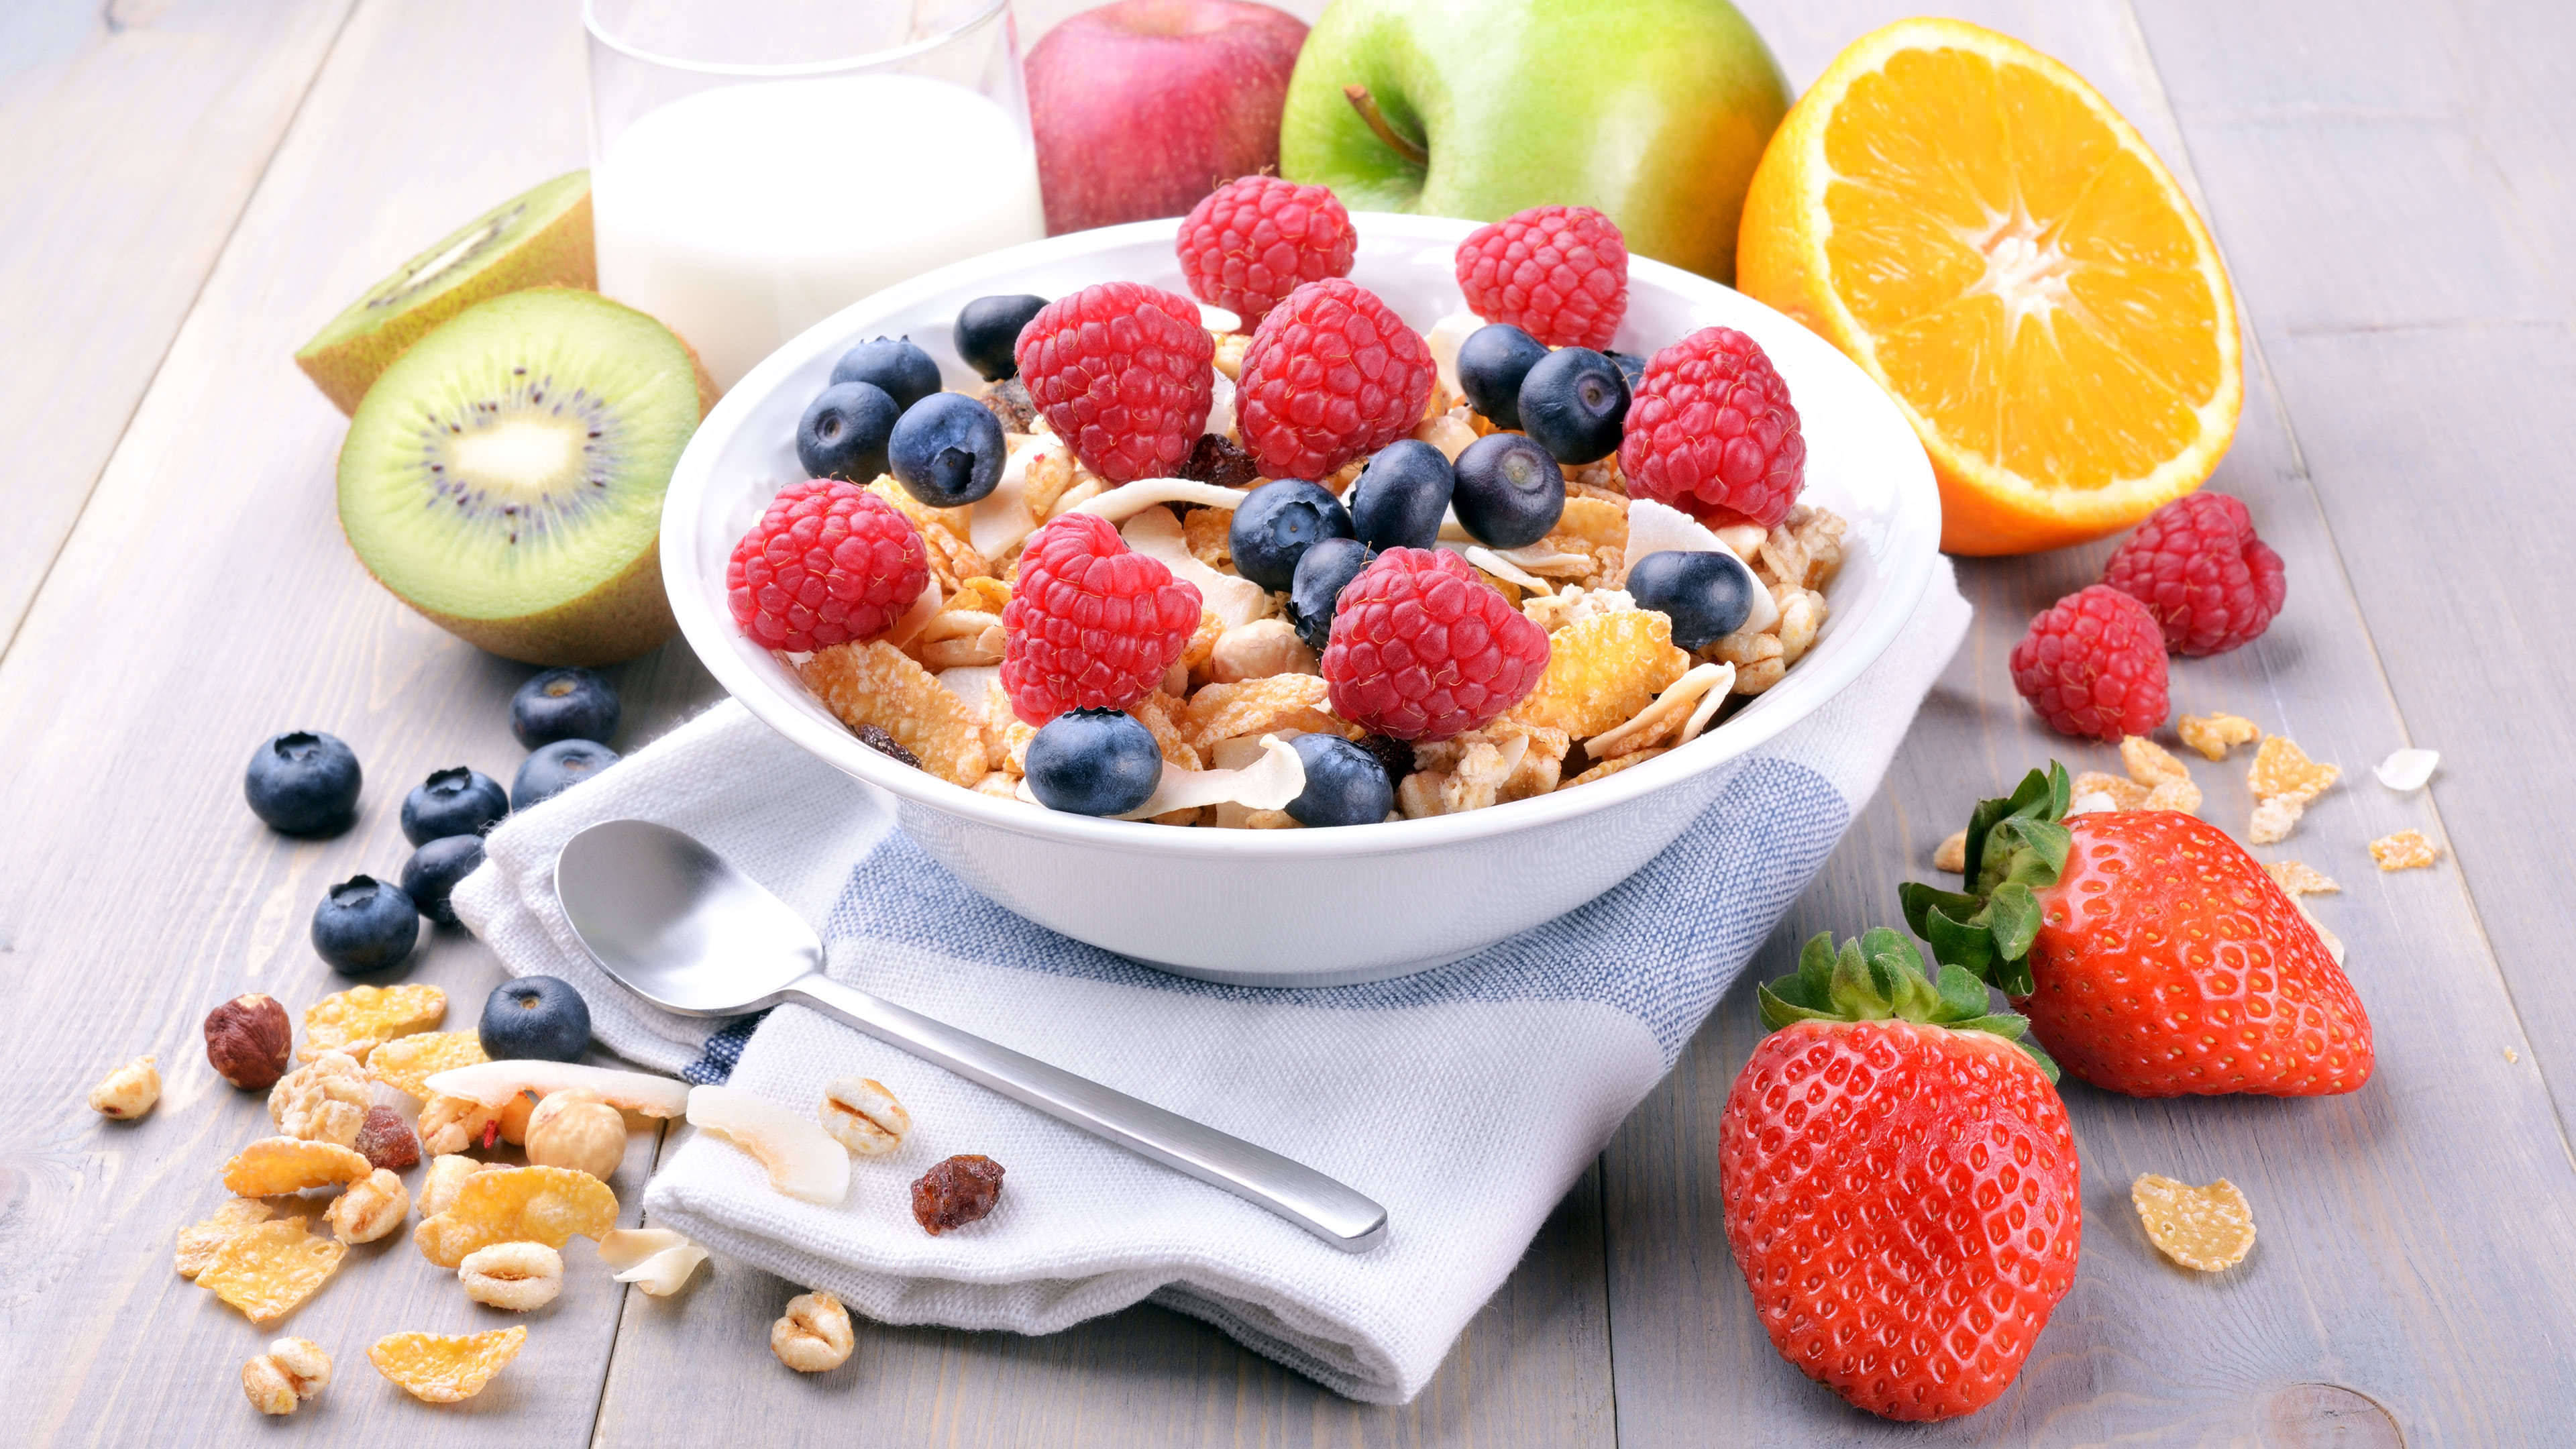 cereal and fruit breakfast uhd 4k wallpaper